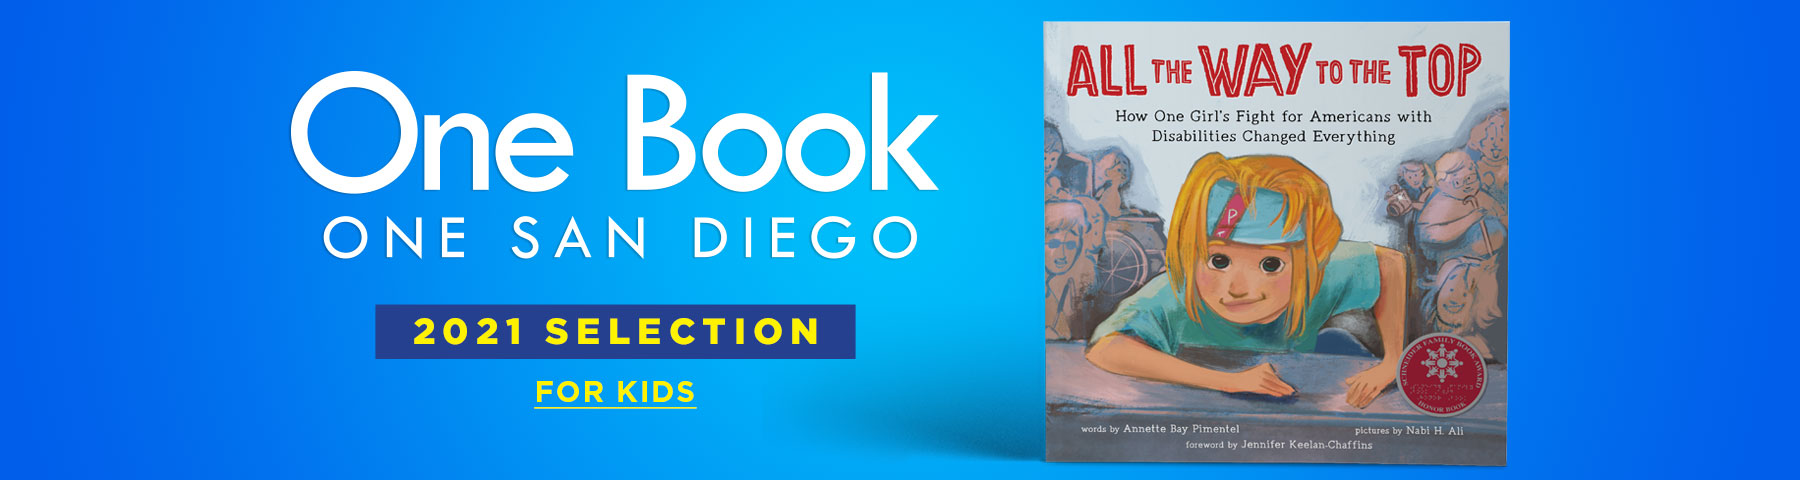 One Book One San Diego for Kids banner